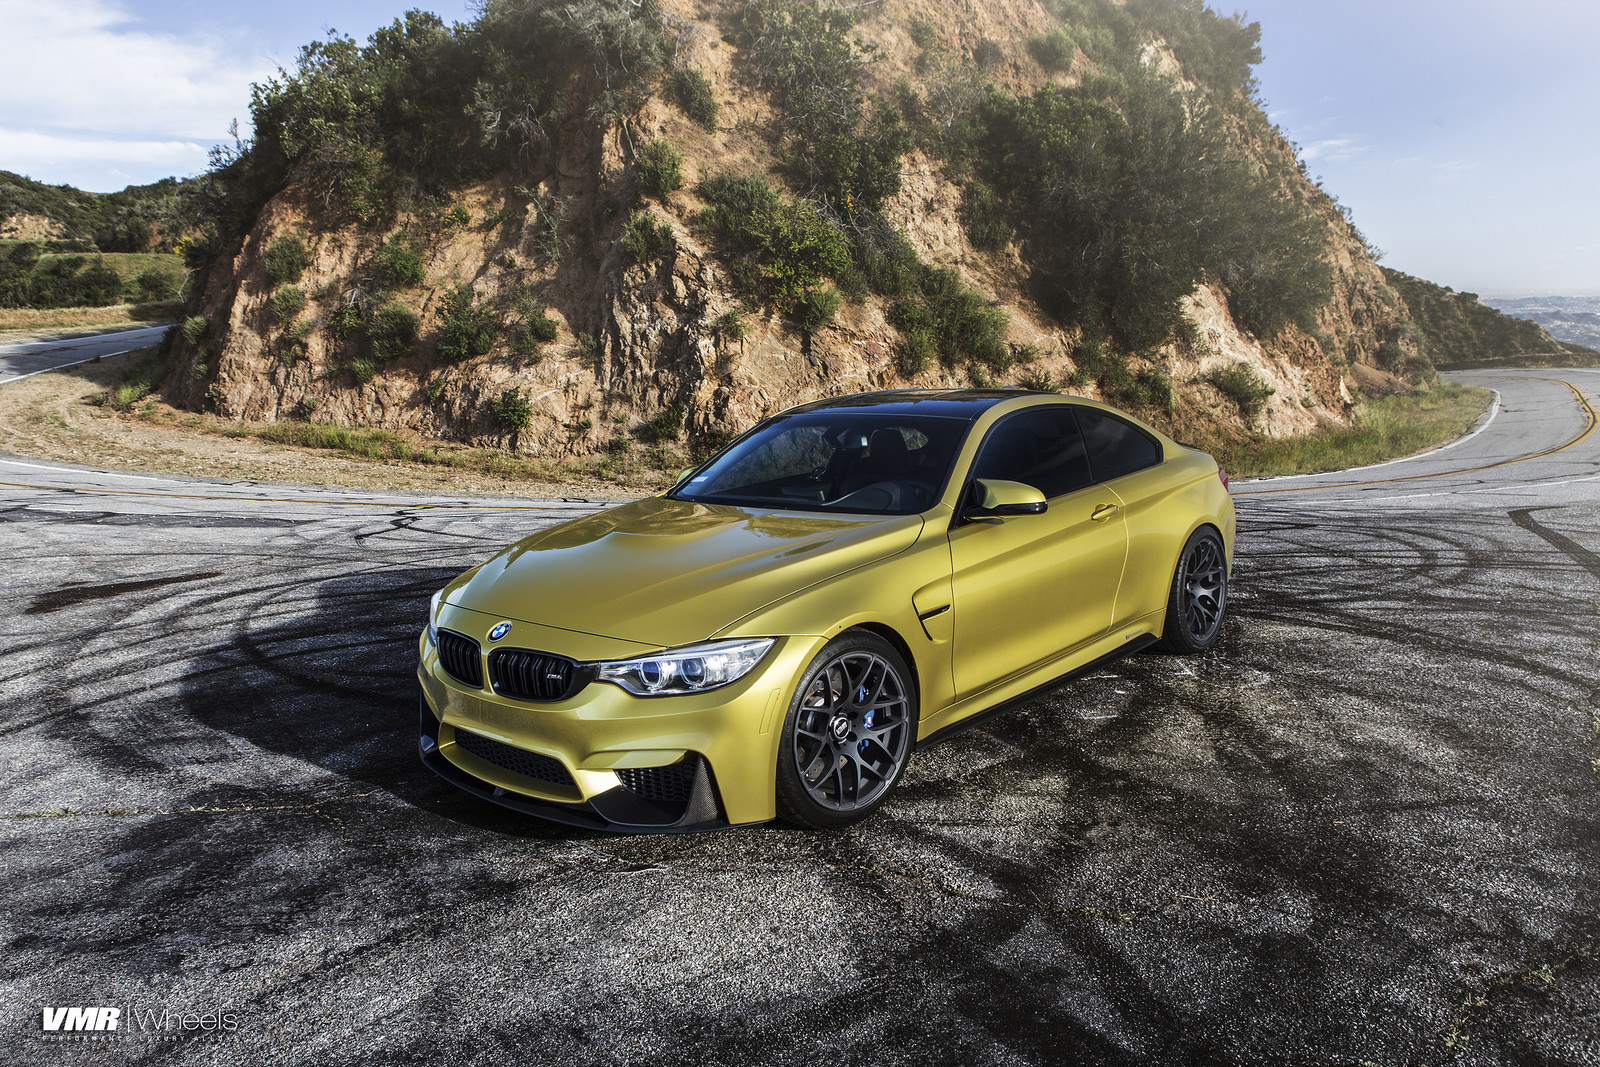 Video Insane Bmw M4 Drift In Moscow Should End With Arrest